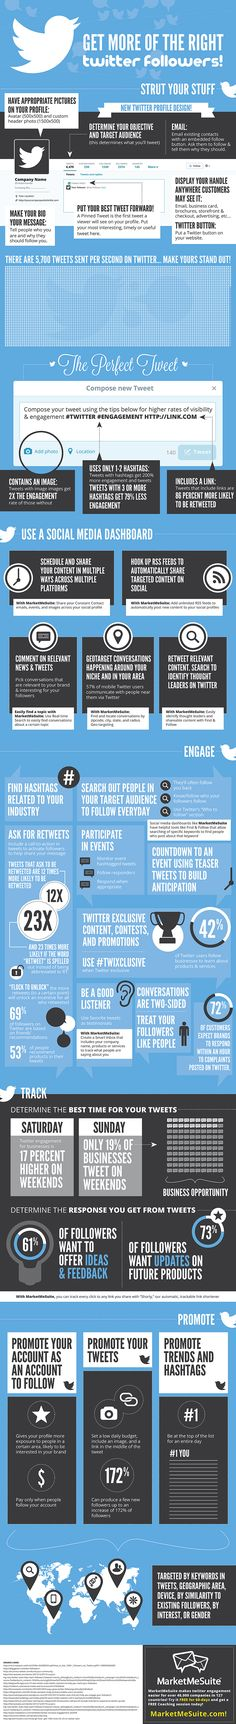 SOCIAL MEDIA - Get More of the Right #Twitter Followers #infographic.